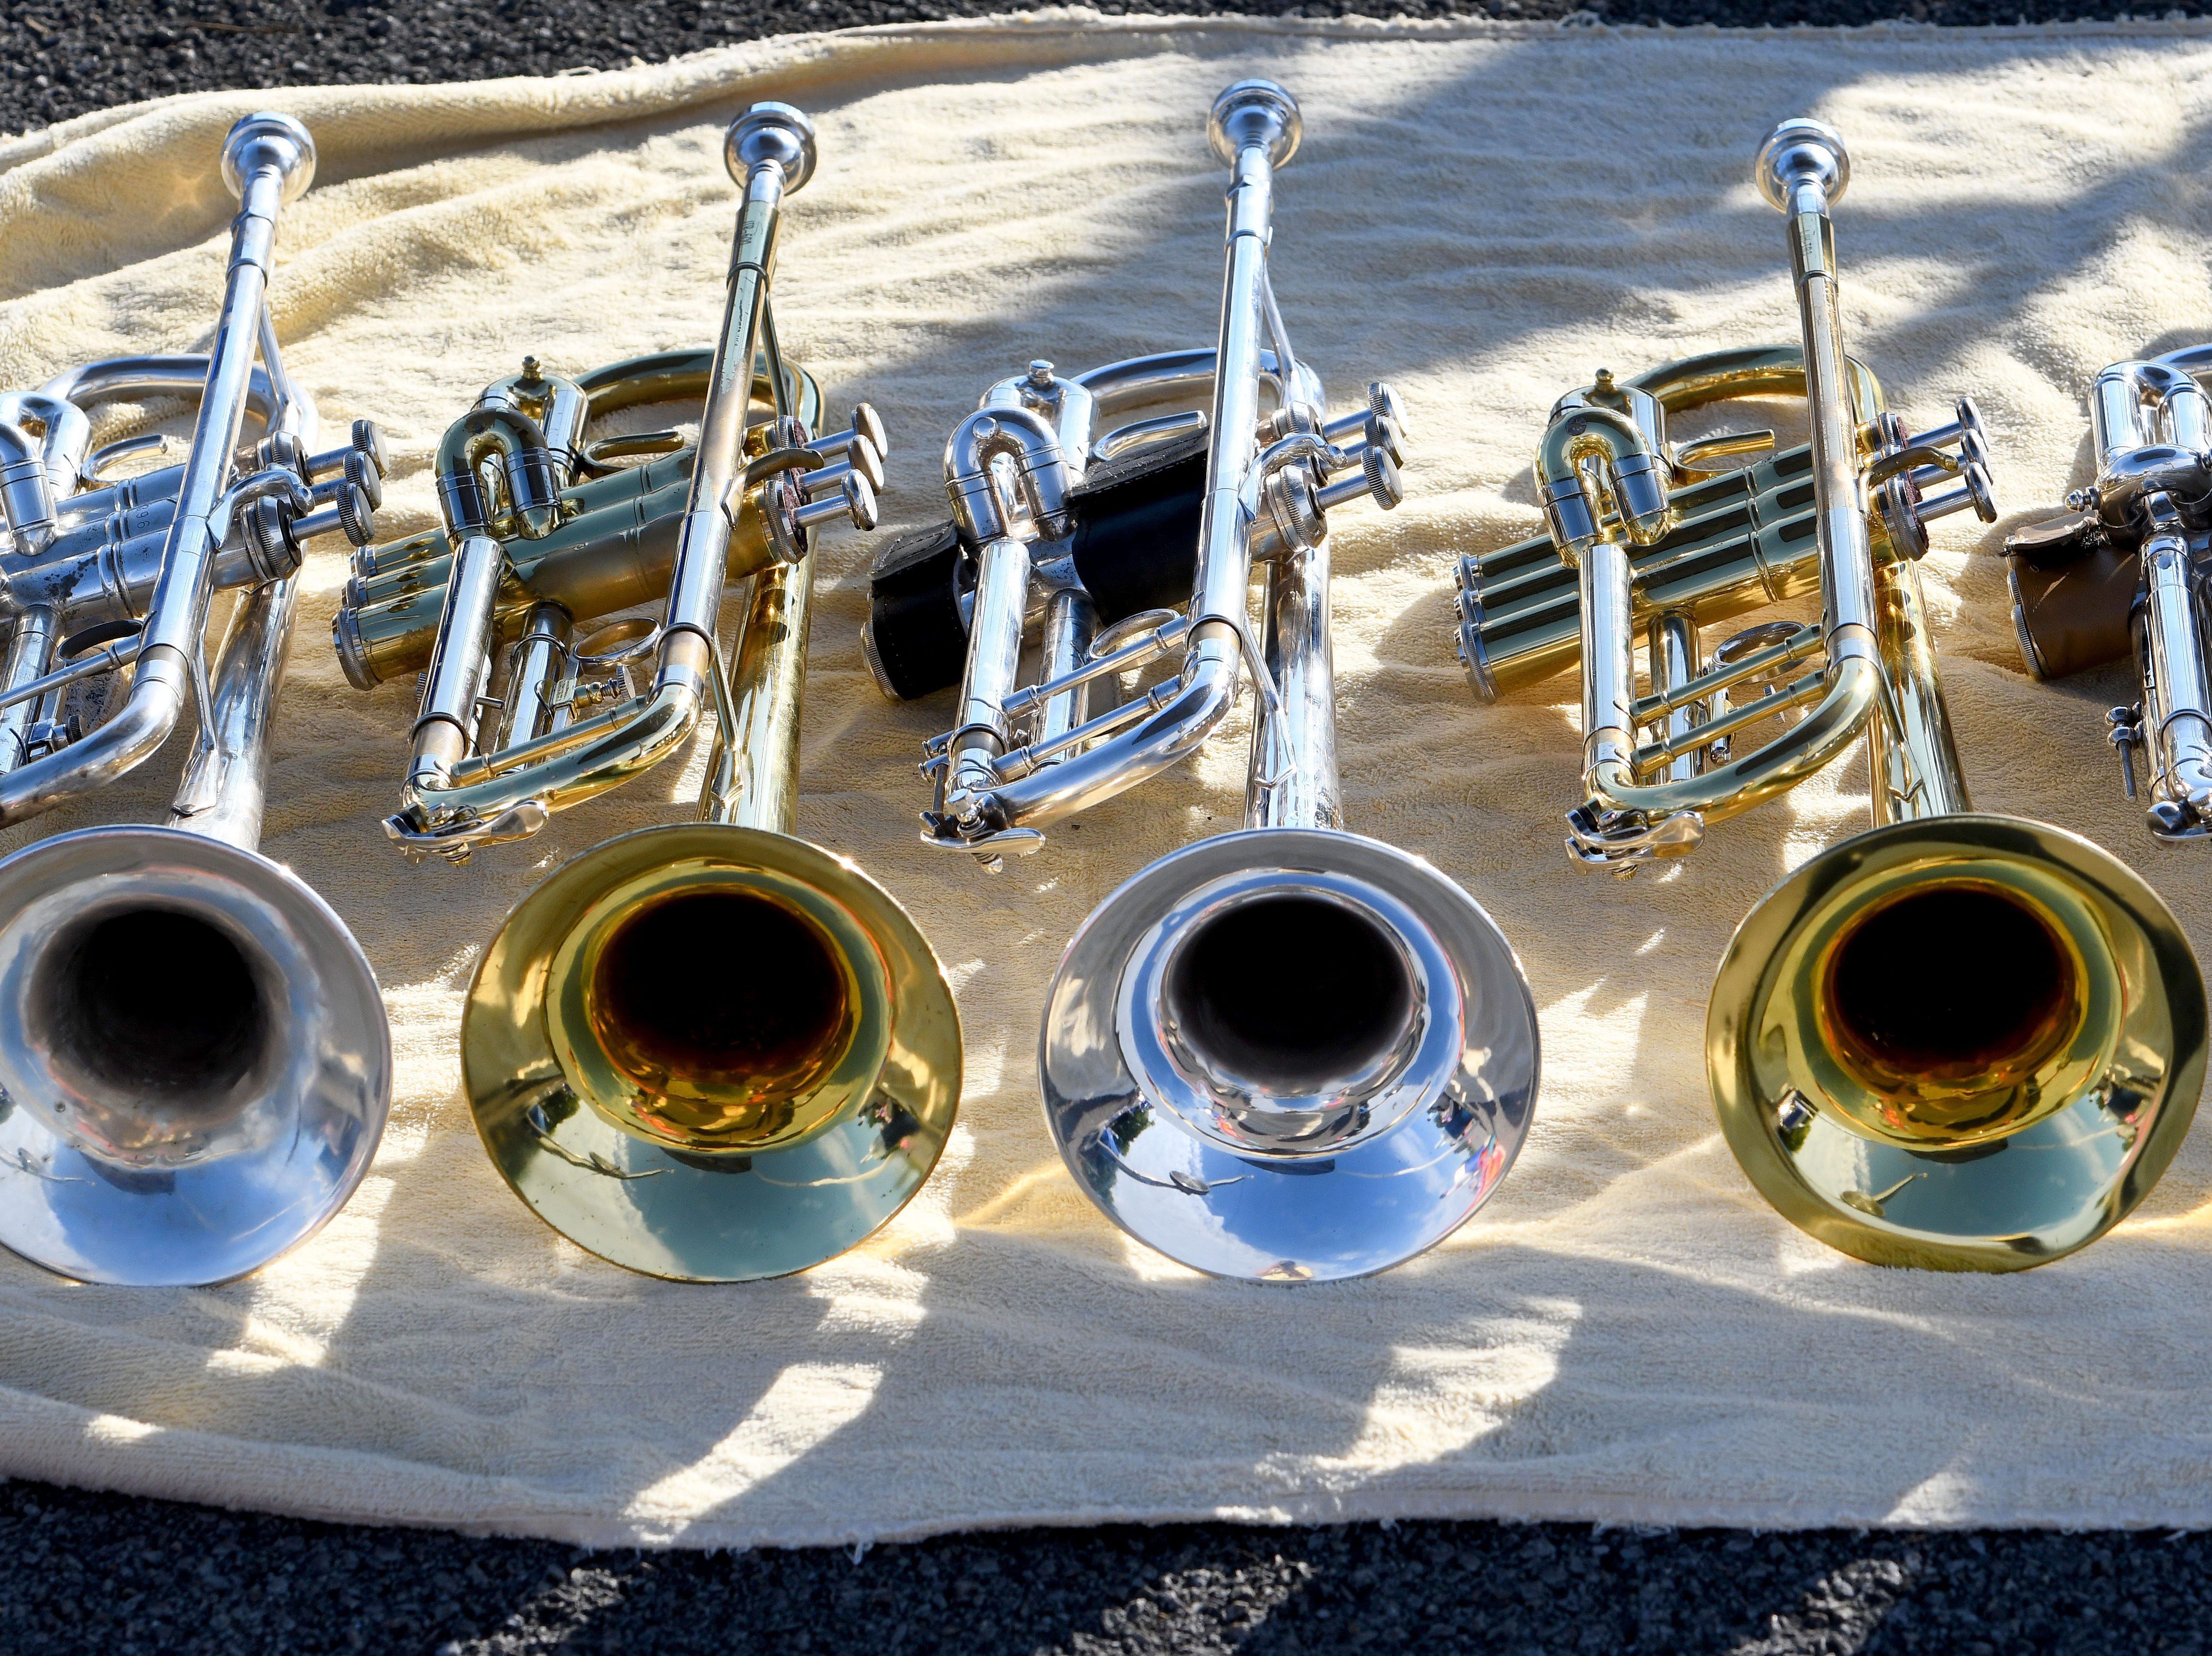 Instruments ready for second half of day at Farragut High School band camp Wednesday, July 18, 2018 on a parking lot at the high school.